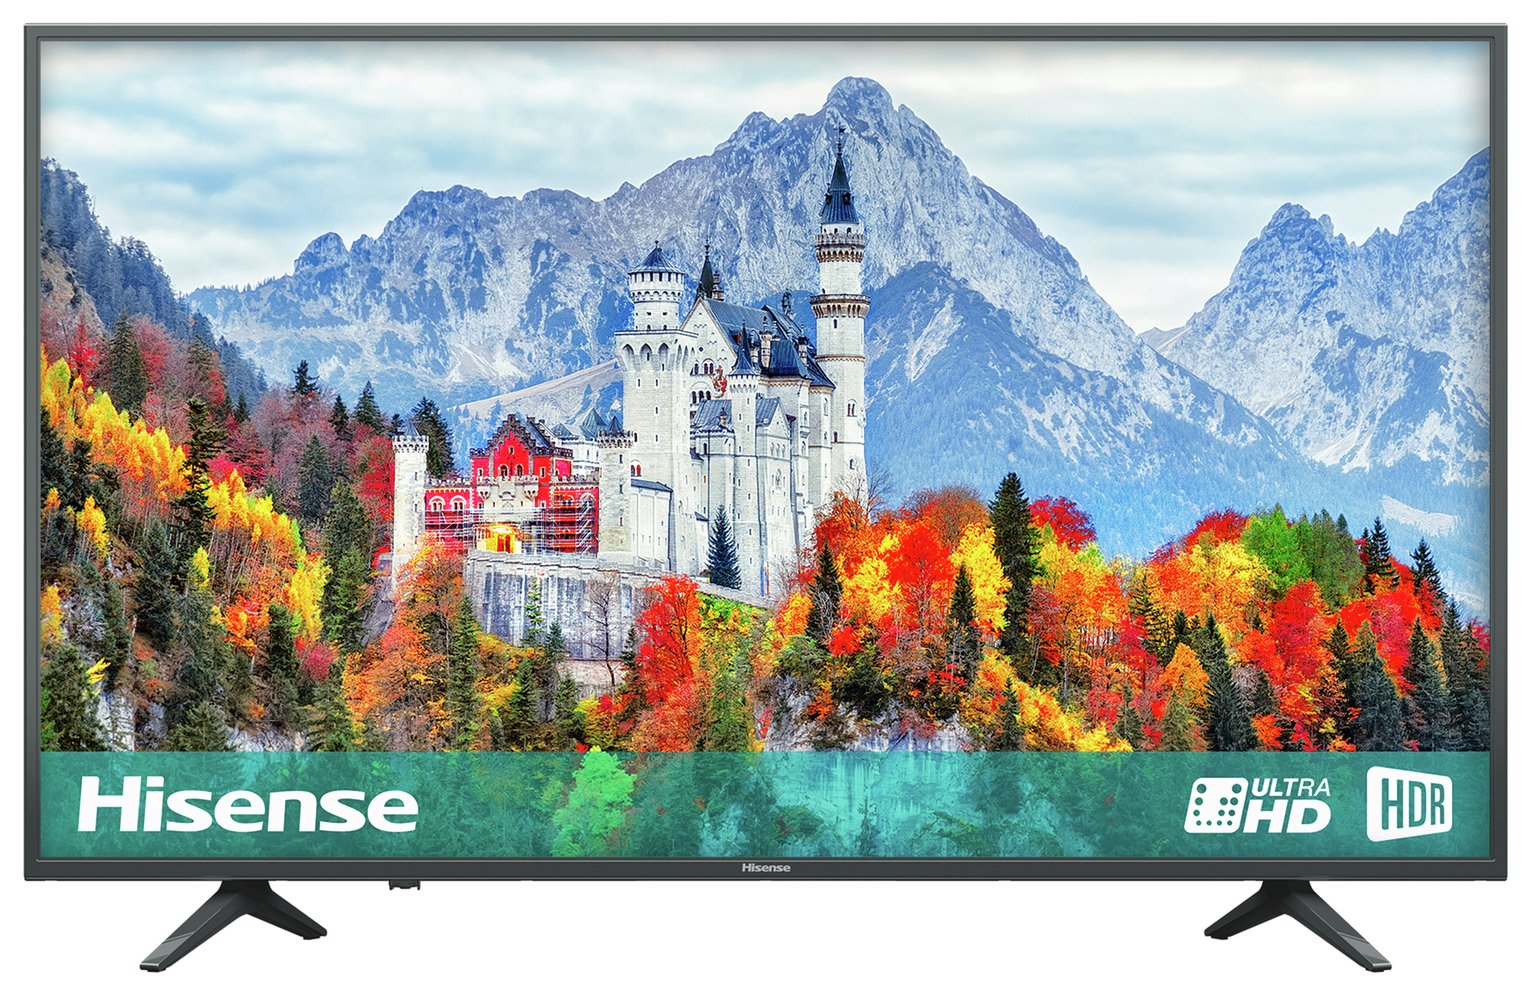 Hisense 65 Inch H65A6250UK Smart 4K UHD TV with HDR